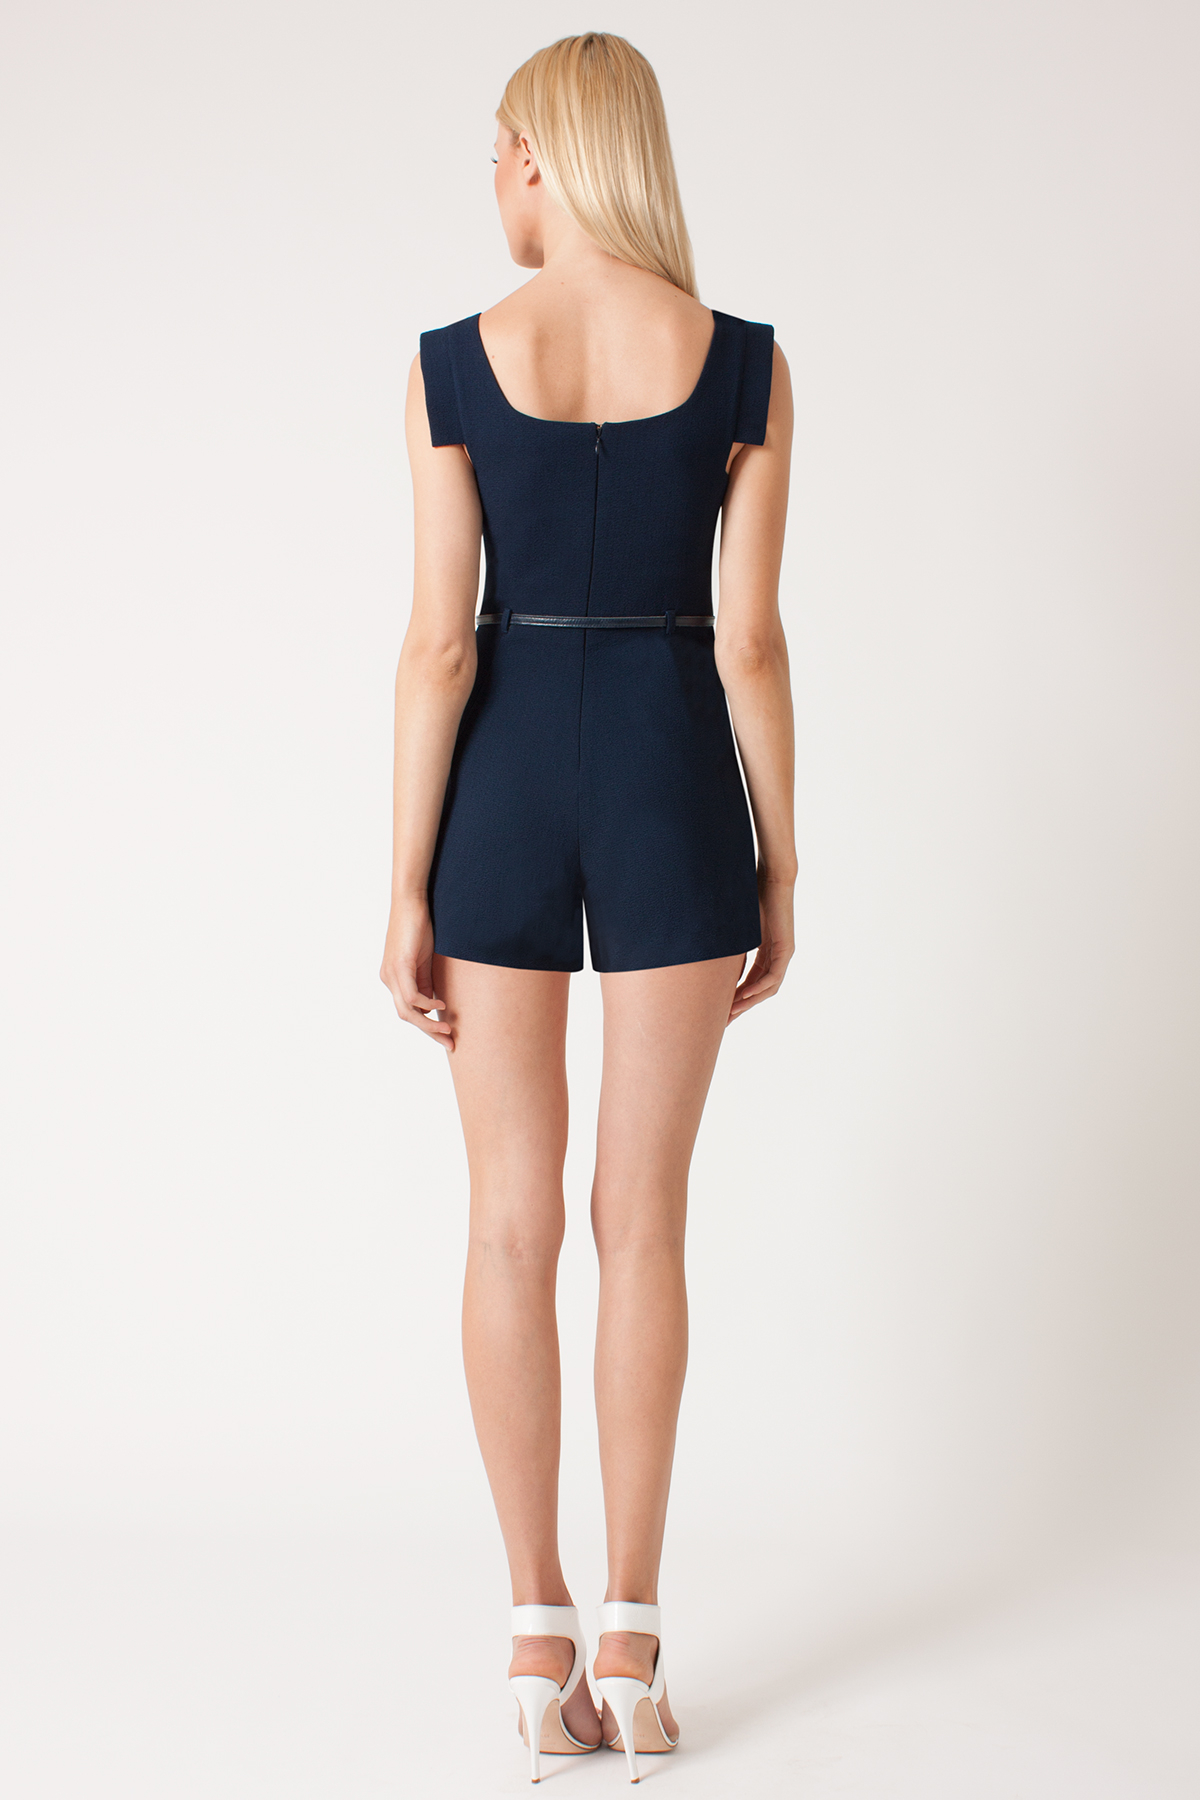 675ed3f0934 Black Halo Jackie O Romper in Blue - Lyst